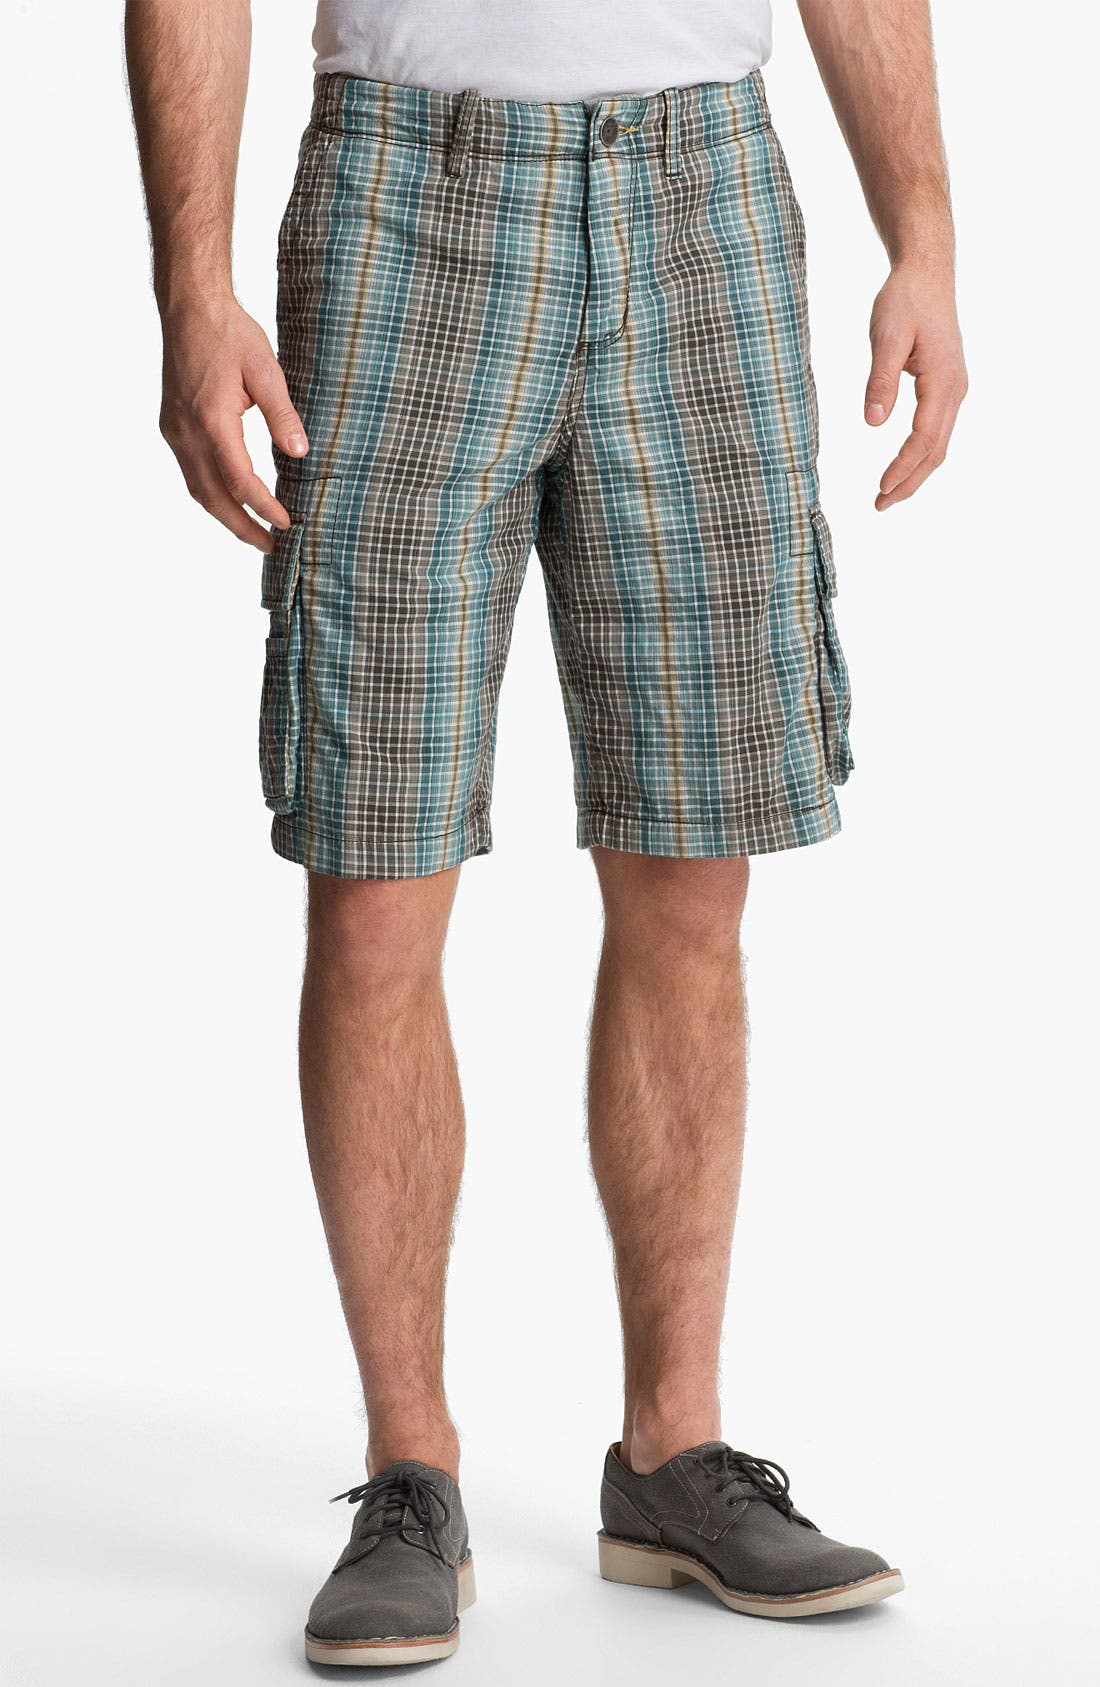 Alternate Image 1 Selected - Tommy Bahama Denim 'Face Off' Cargo Shorts (Online Only)